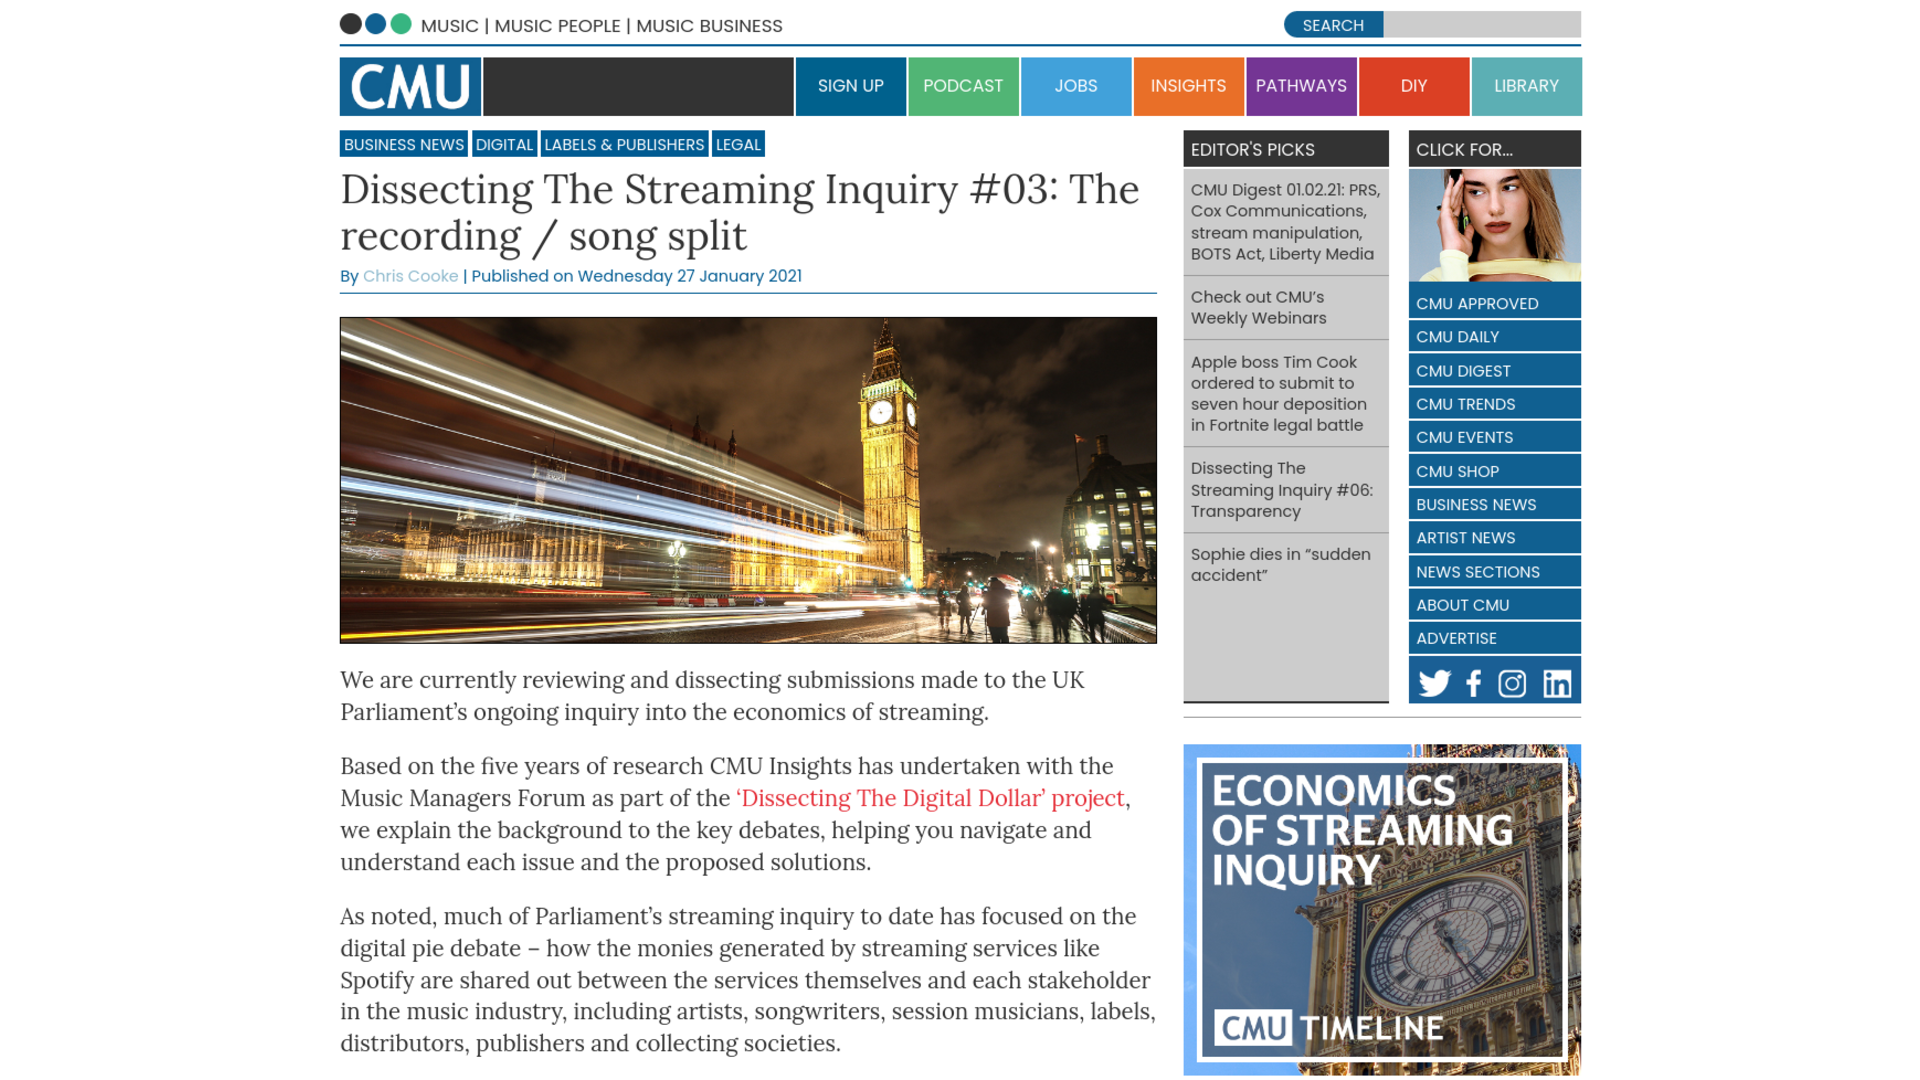 Fairness Rocks News Dissecting The Streaming Inquiry #03: The recording / song split